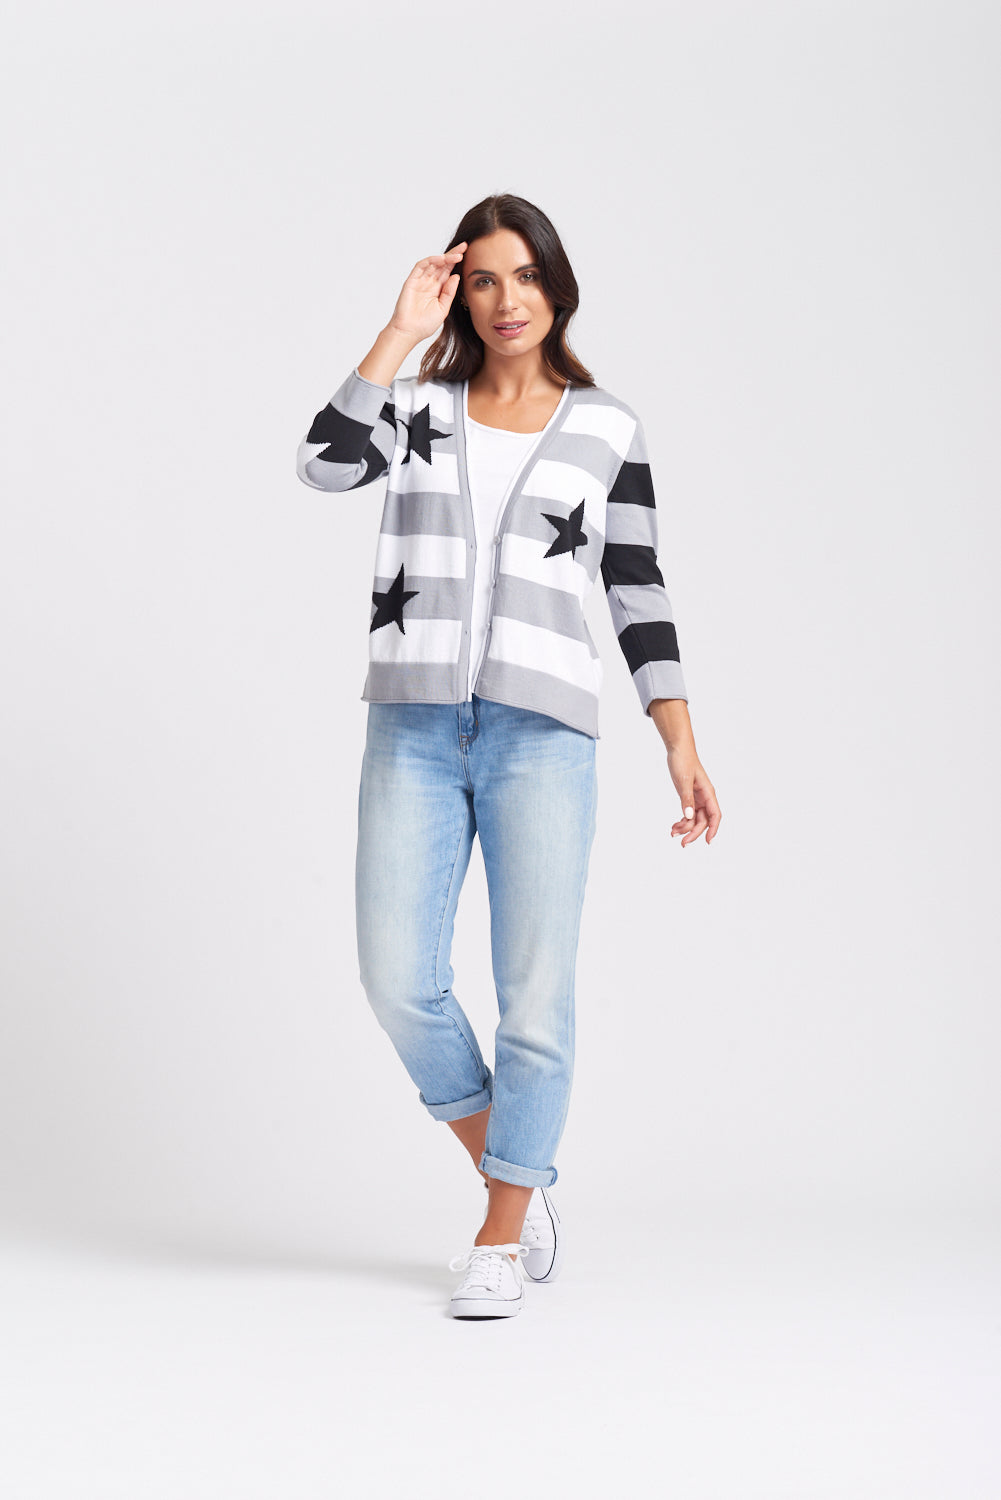 100% Cotton Stars & Stripes Cardigan - Silver